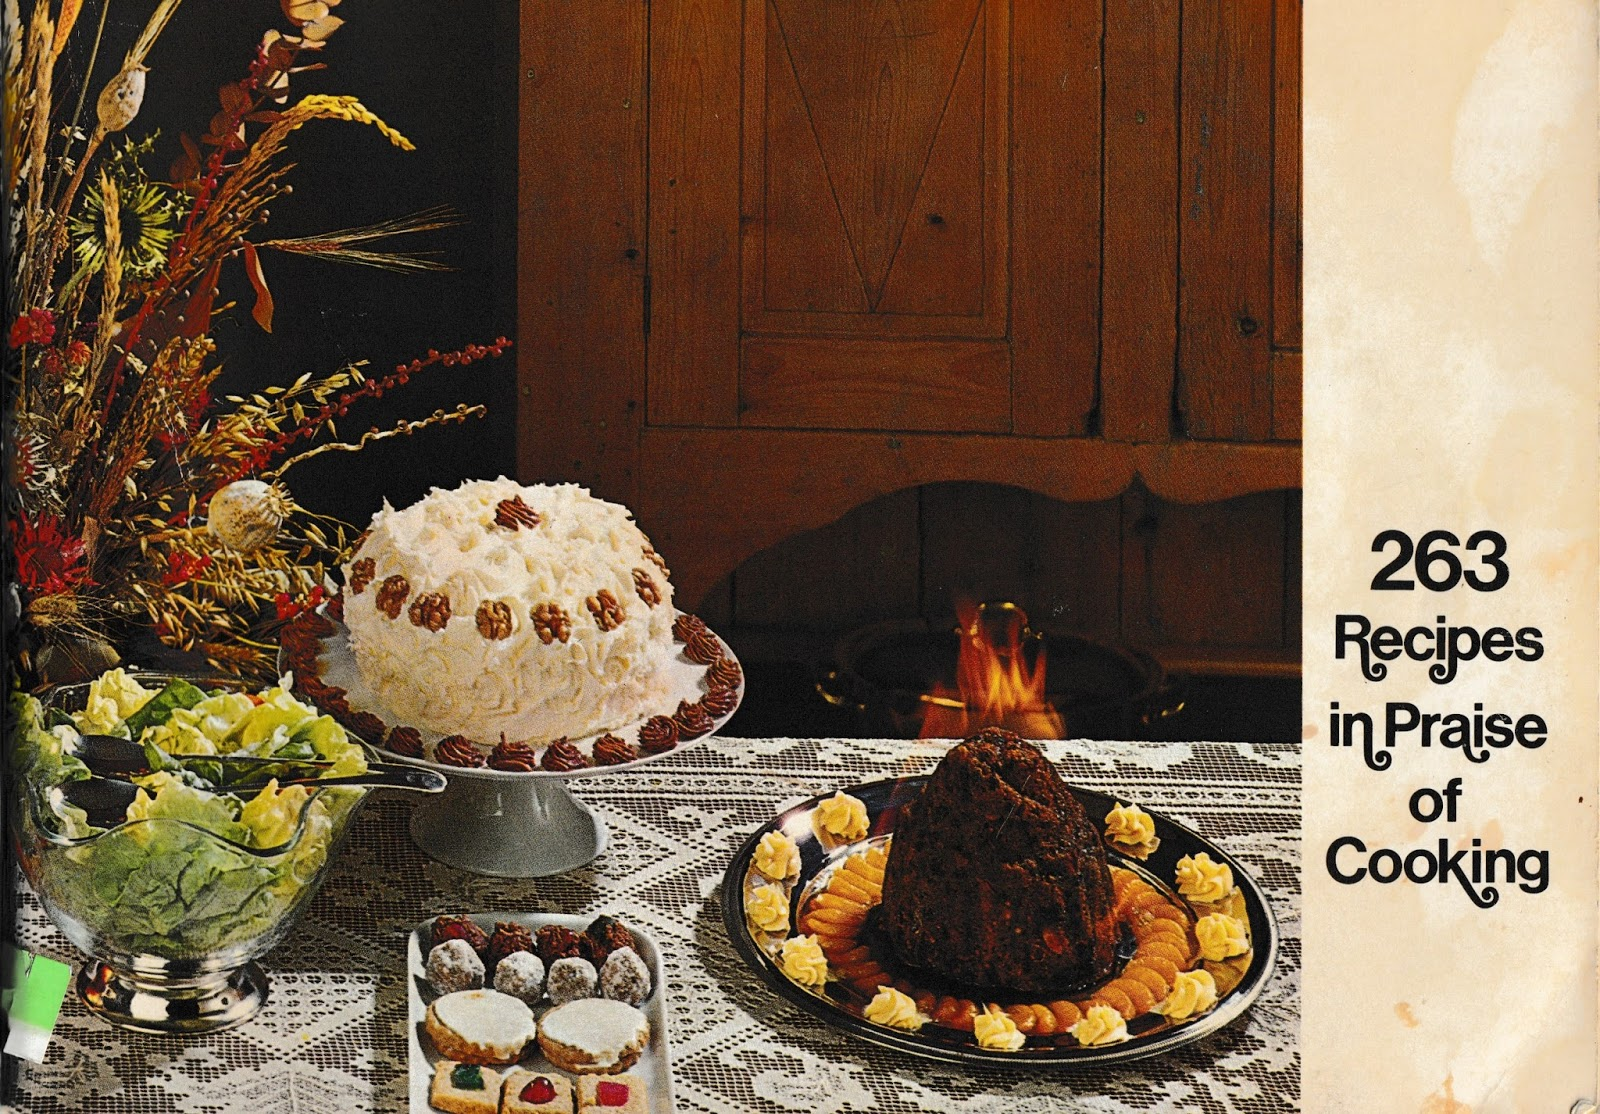 The left chapter 263 recipes in praise of cooking w cottage cheese 263 recipes in praise of cooking w cottage cheese pizza chicken kiev cream of tuna soup more vintage cookbook tbt forumfinder Gallery